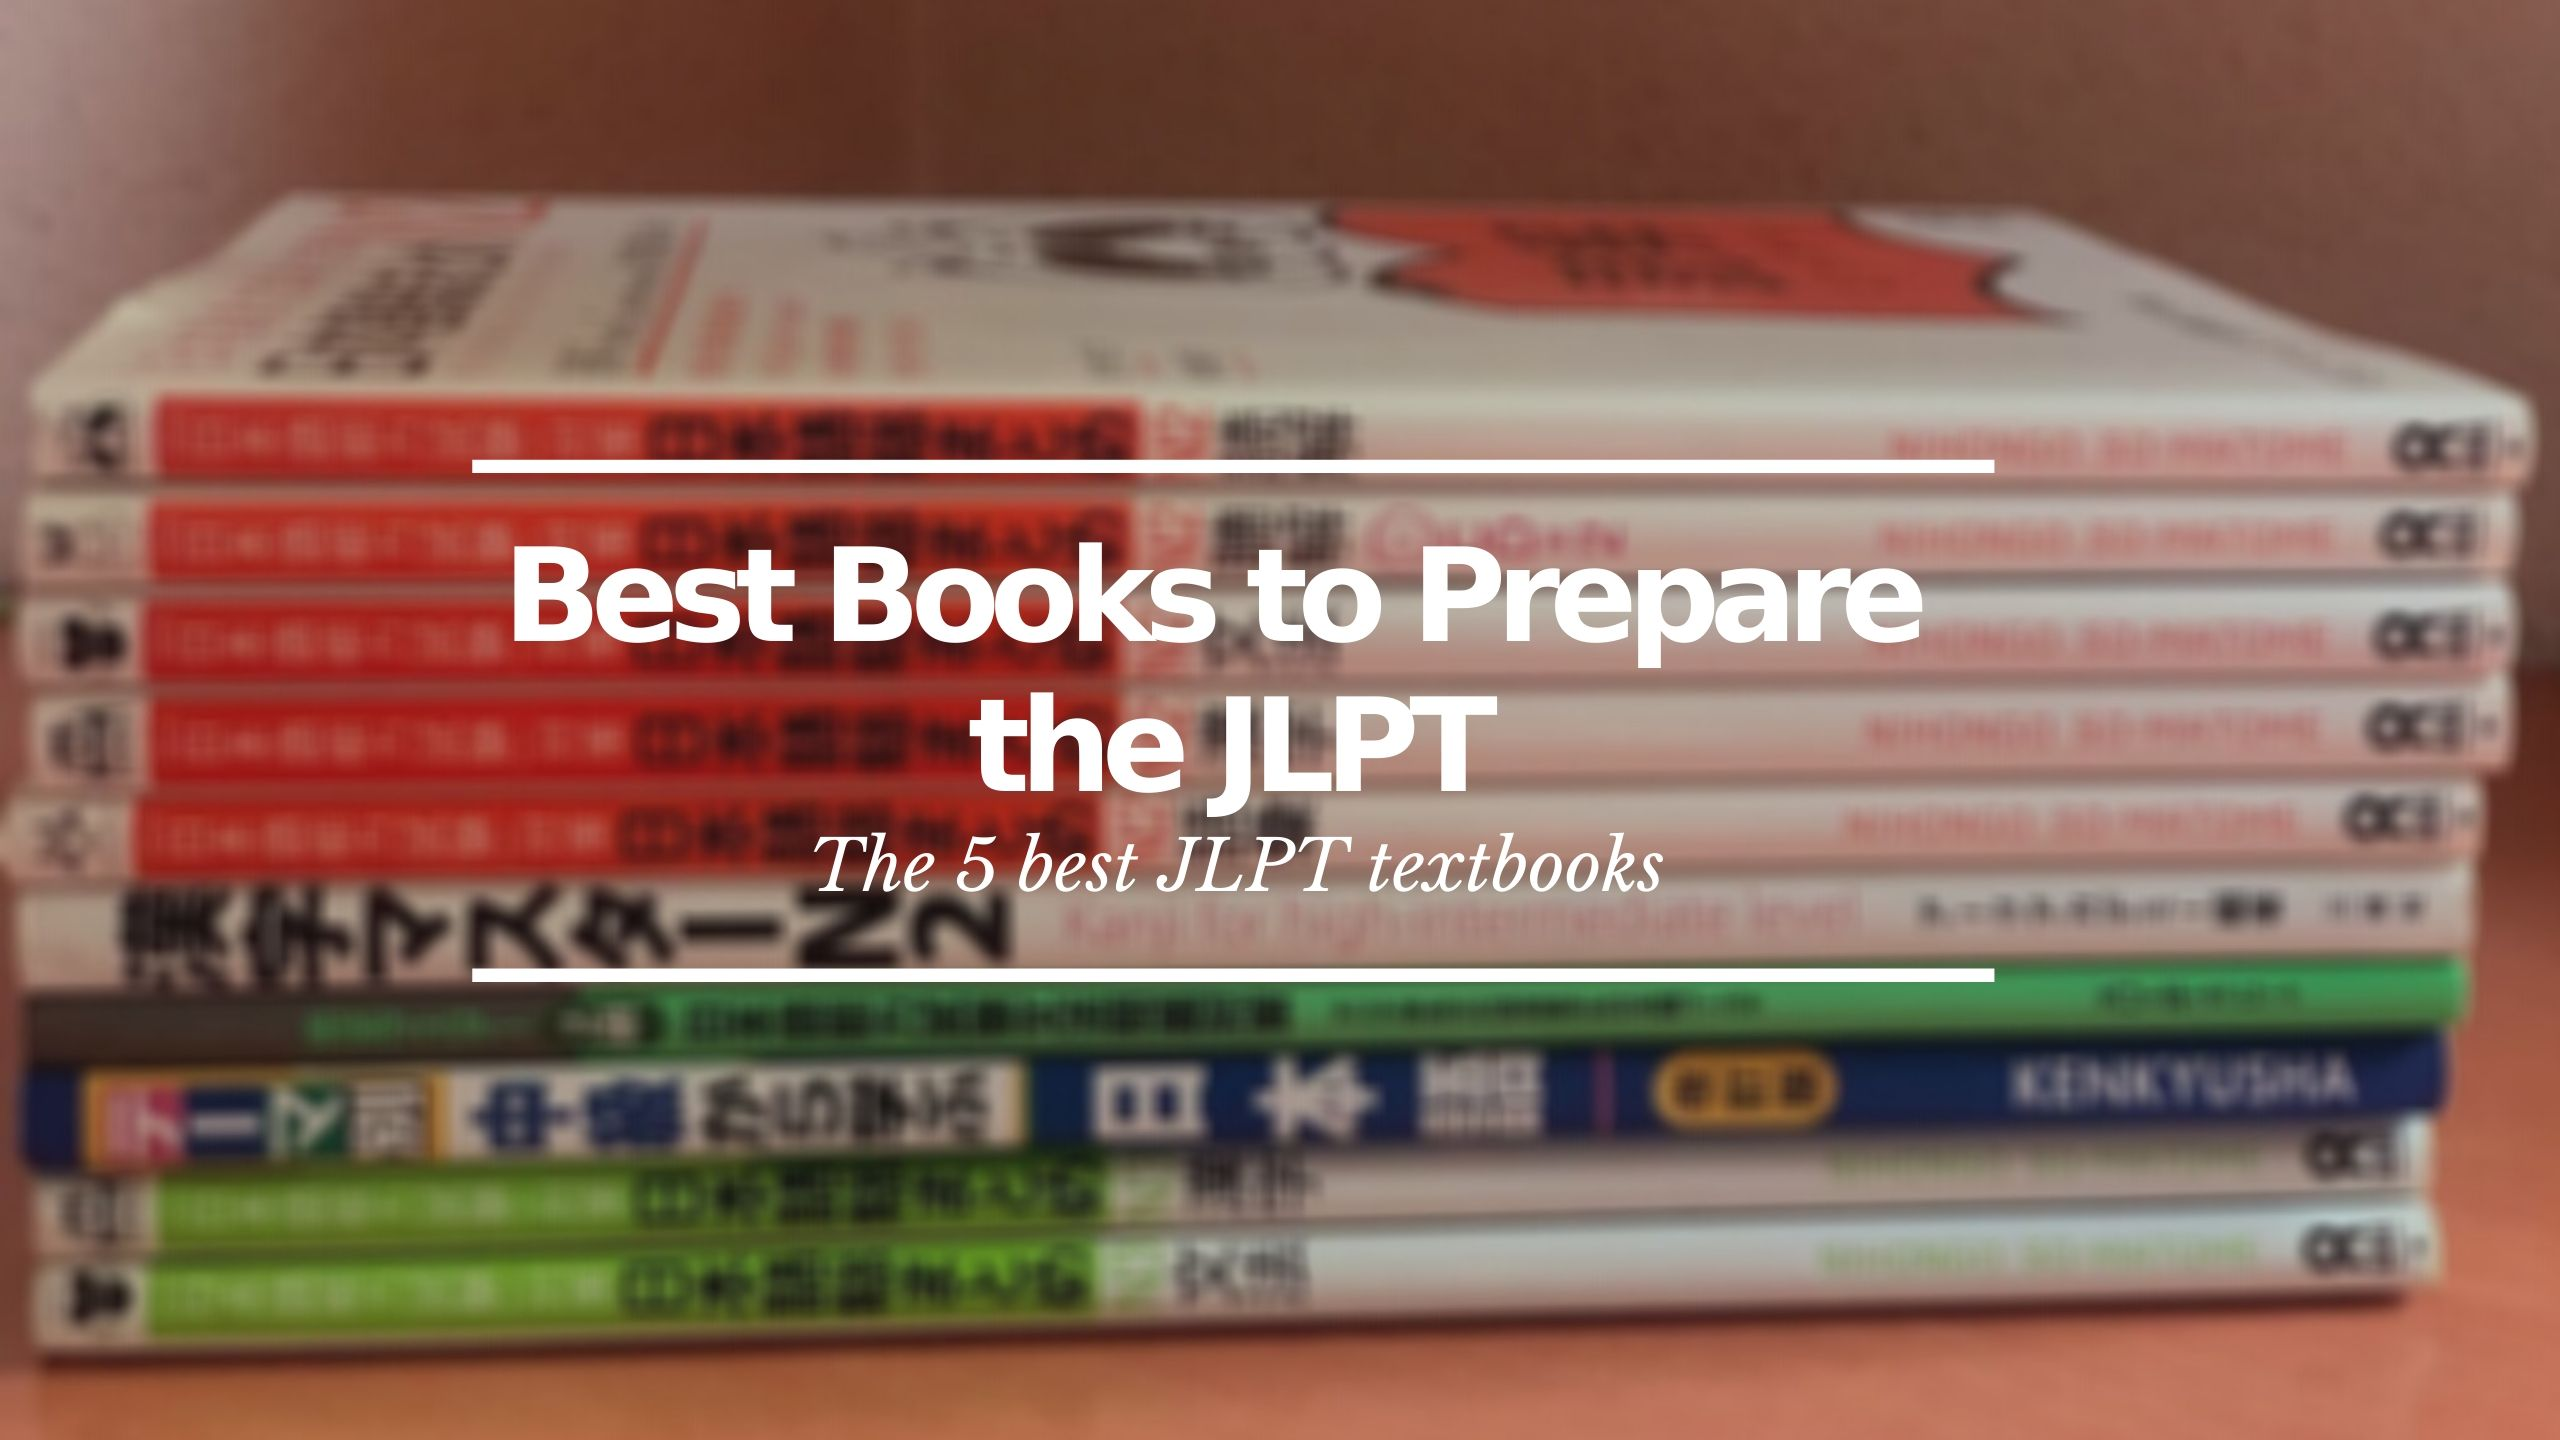 Best Books to Prepare the JLPT